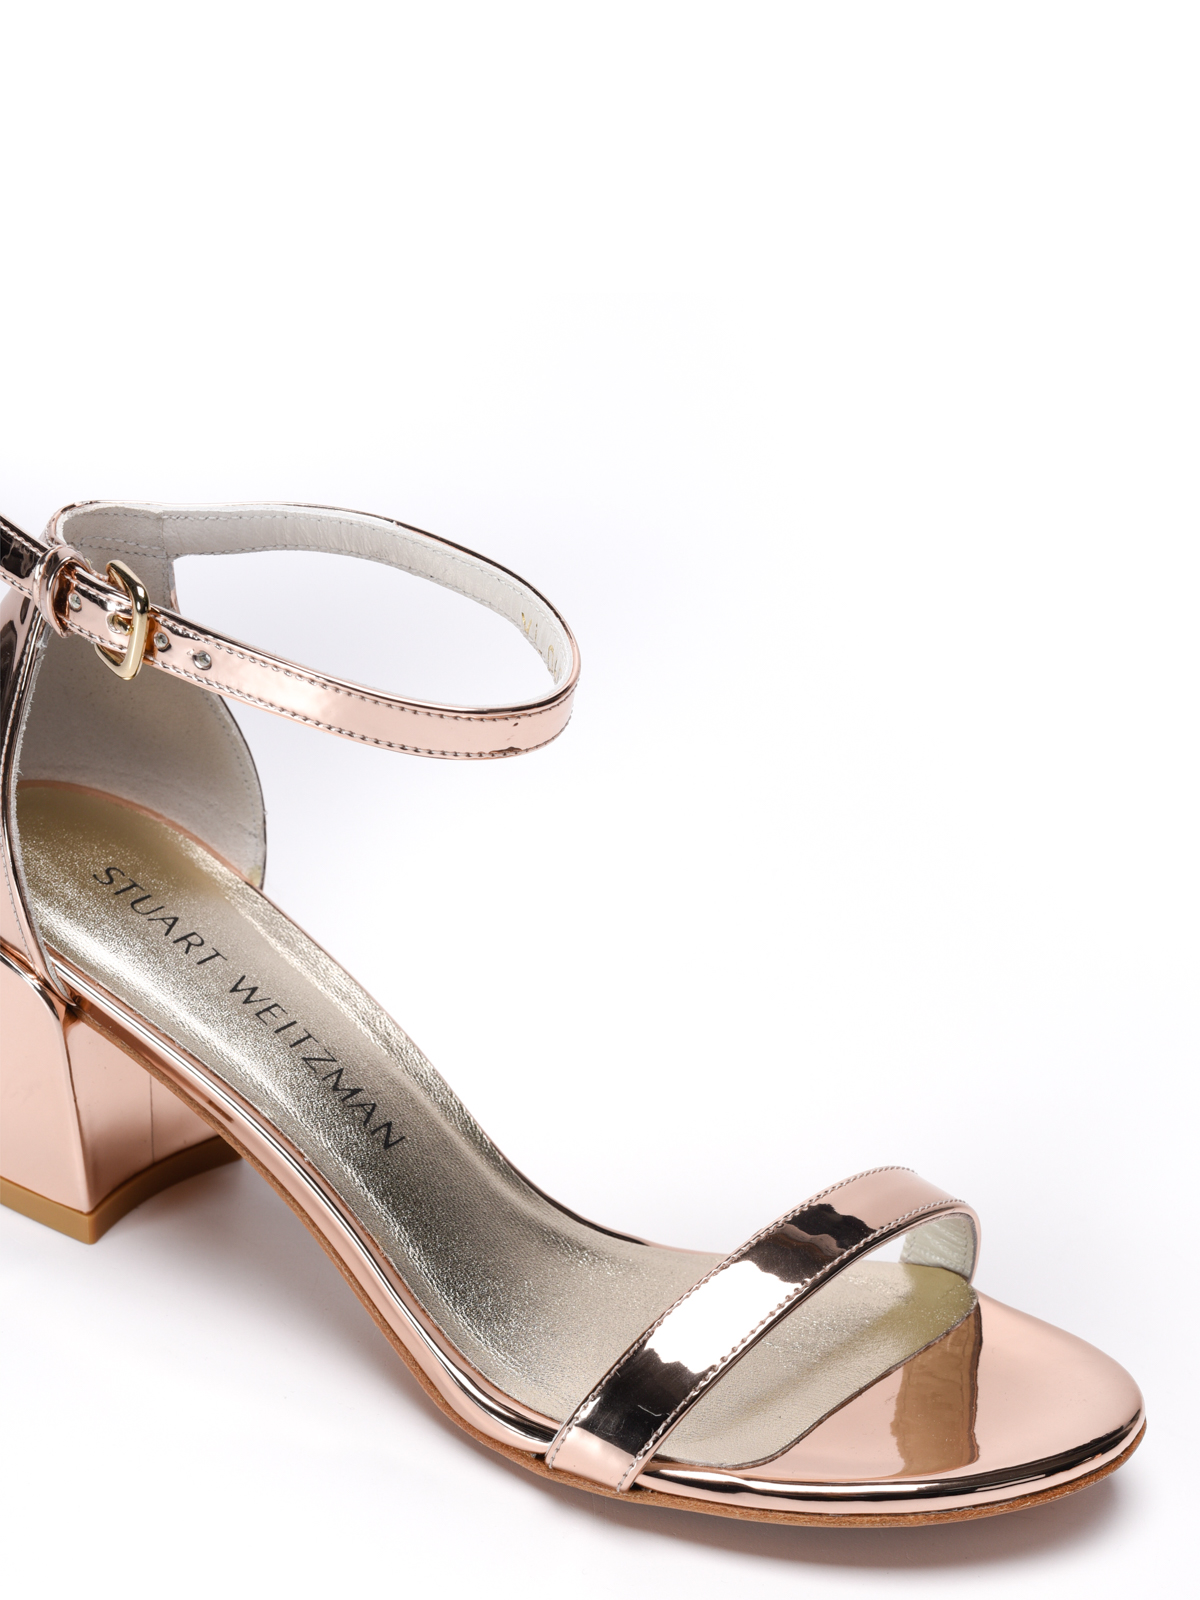 Stuart Weitzman Beige Patent Leather Nearlynude Lucite